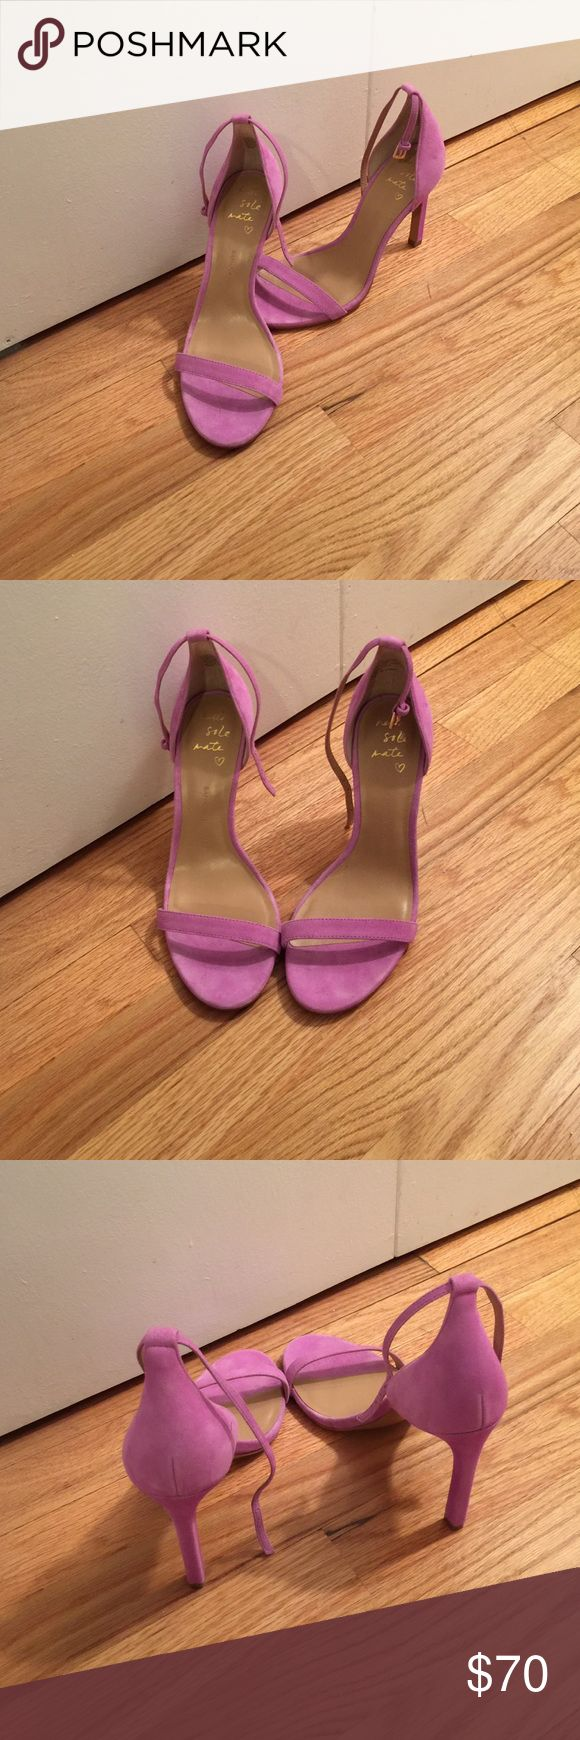 """Banana Republic purple strappy heels Gorgeous 4"""" heeled sandals with an ankle strap. In a fun and vibrant light purple color. Like new! Banana Republic Shoes Heels"""